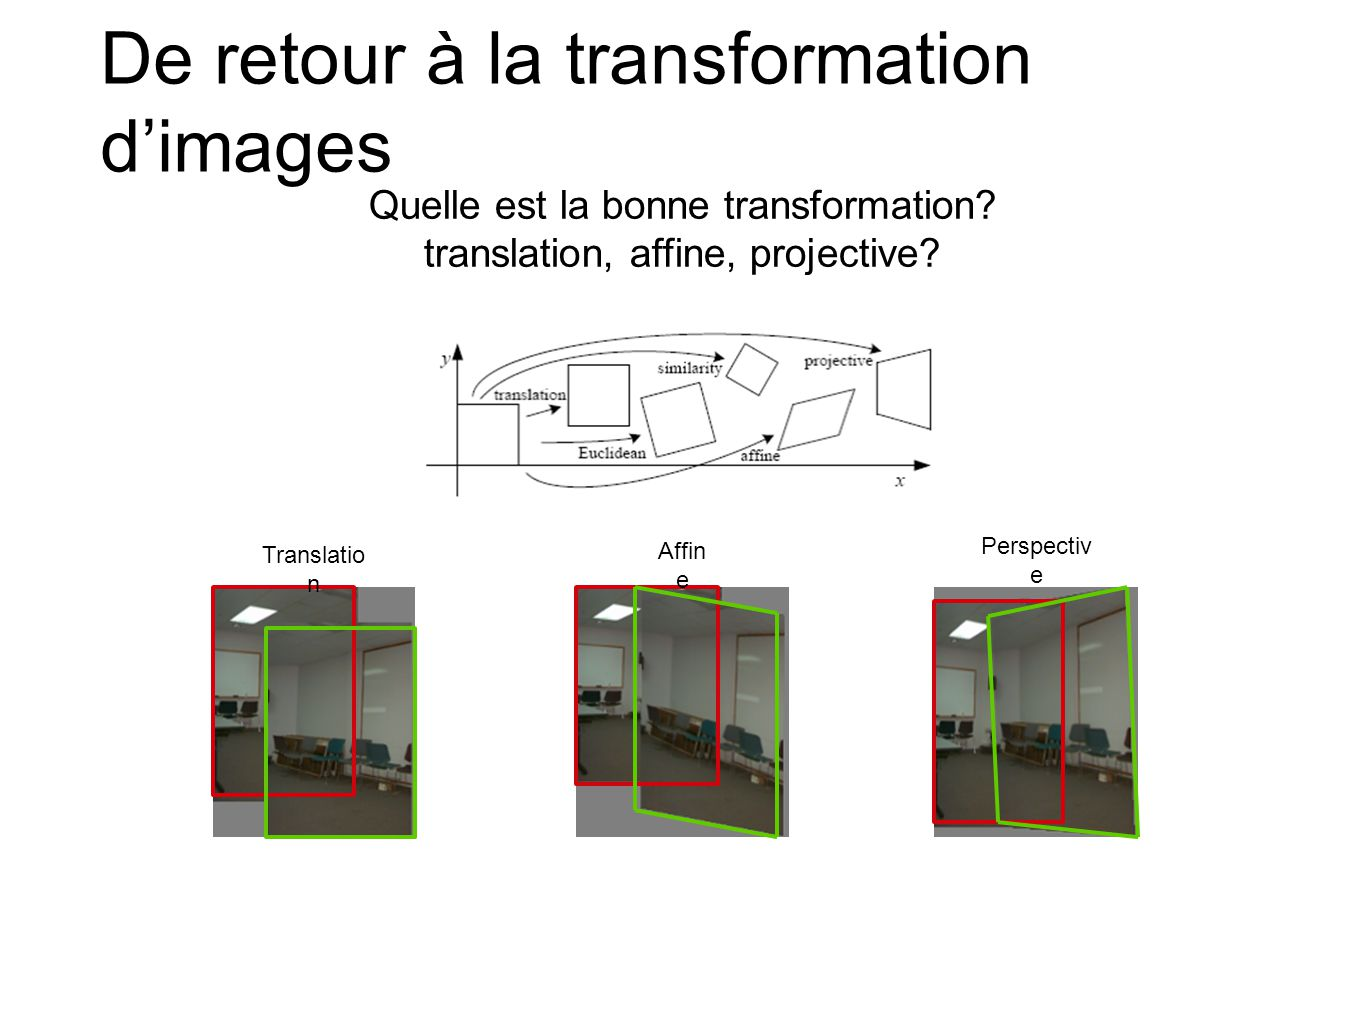 De retour à la transformation d'images